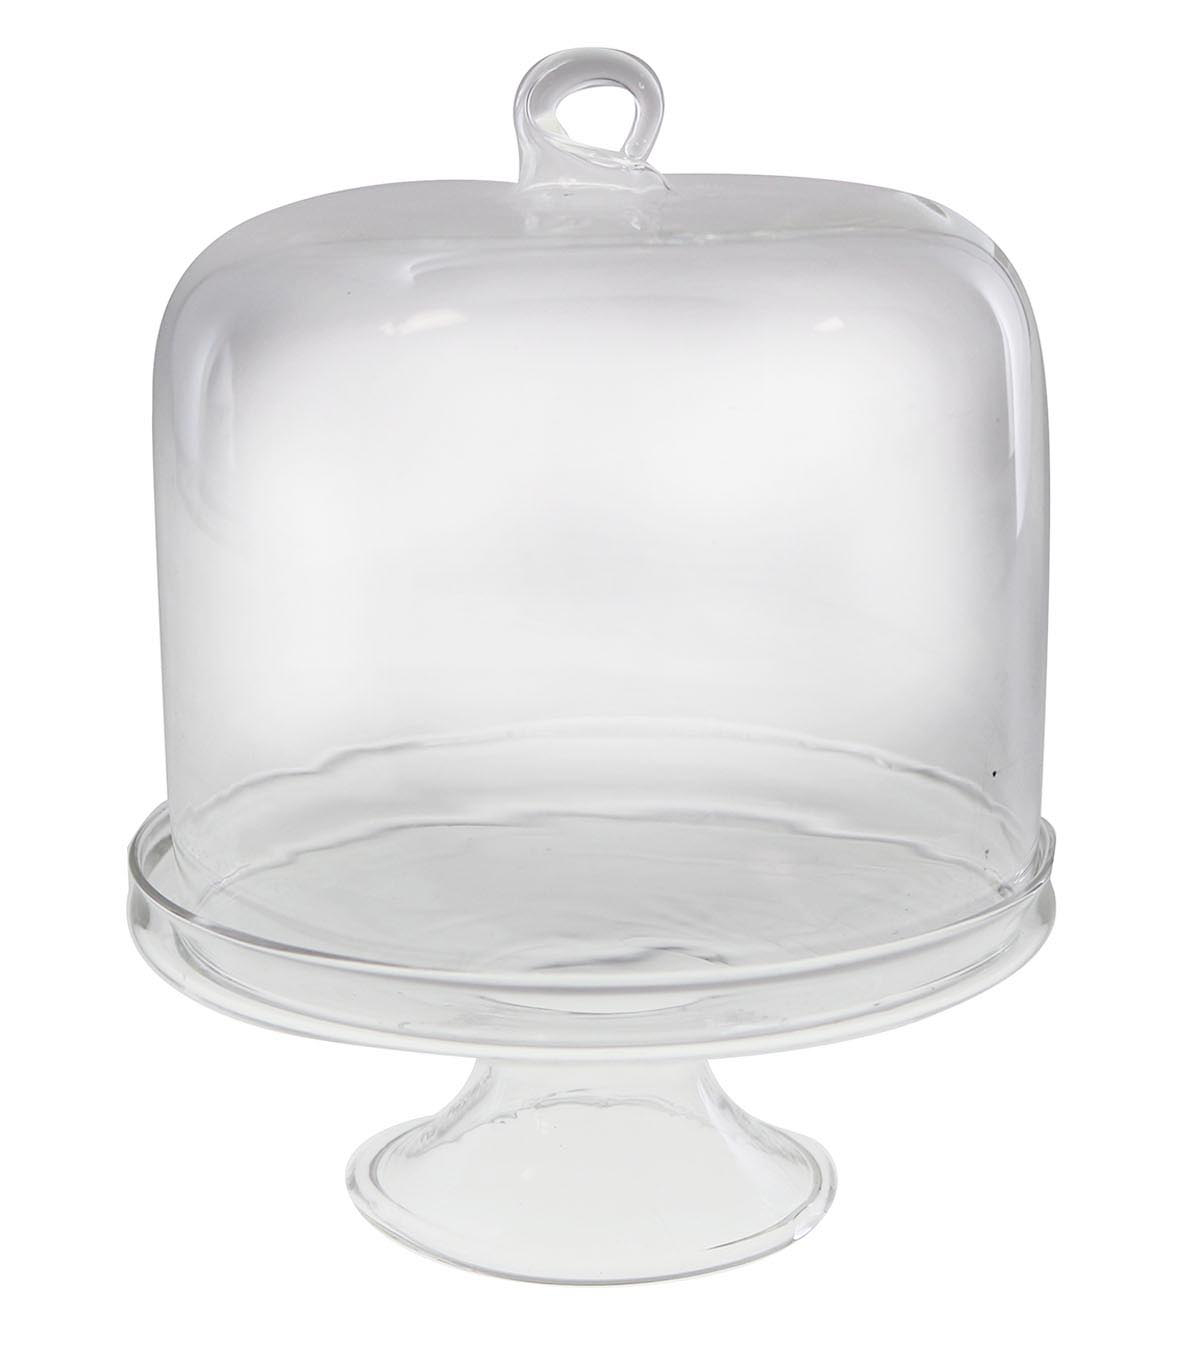 Small Dome Display Glass Cake Stand